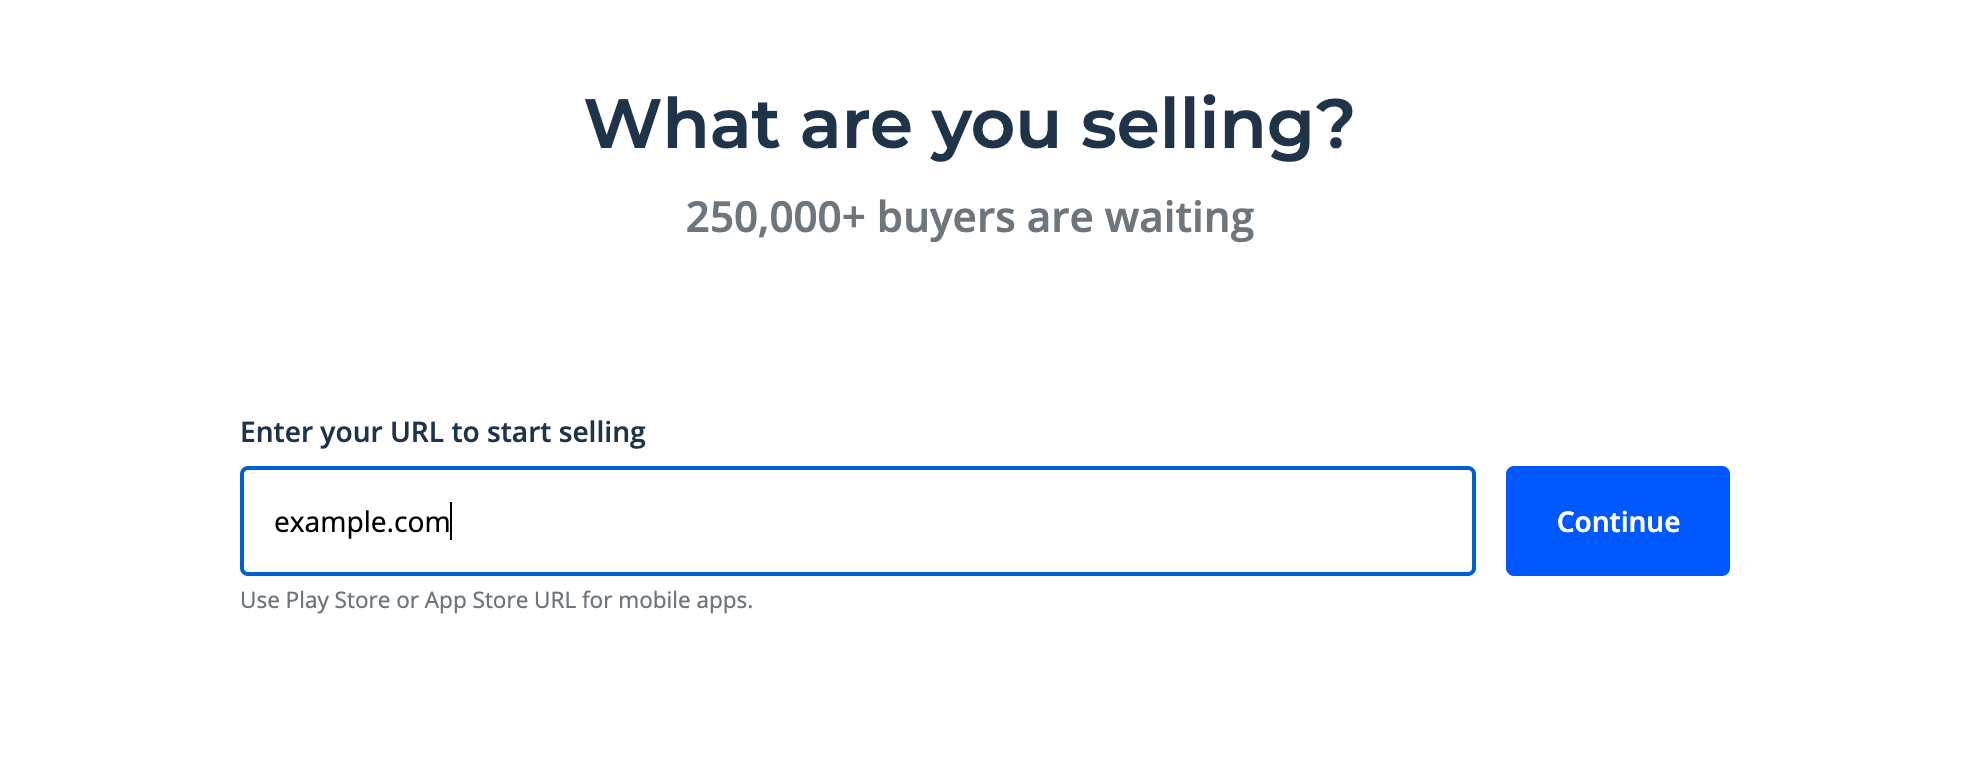 Entering the domain you want to sell on Flippa.